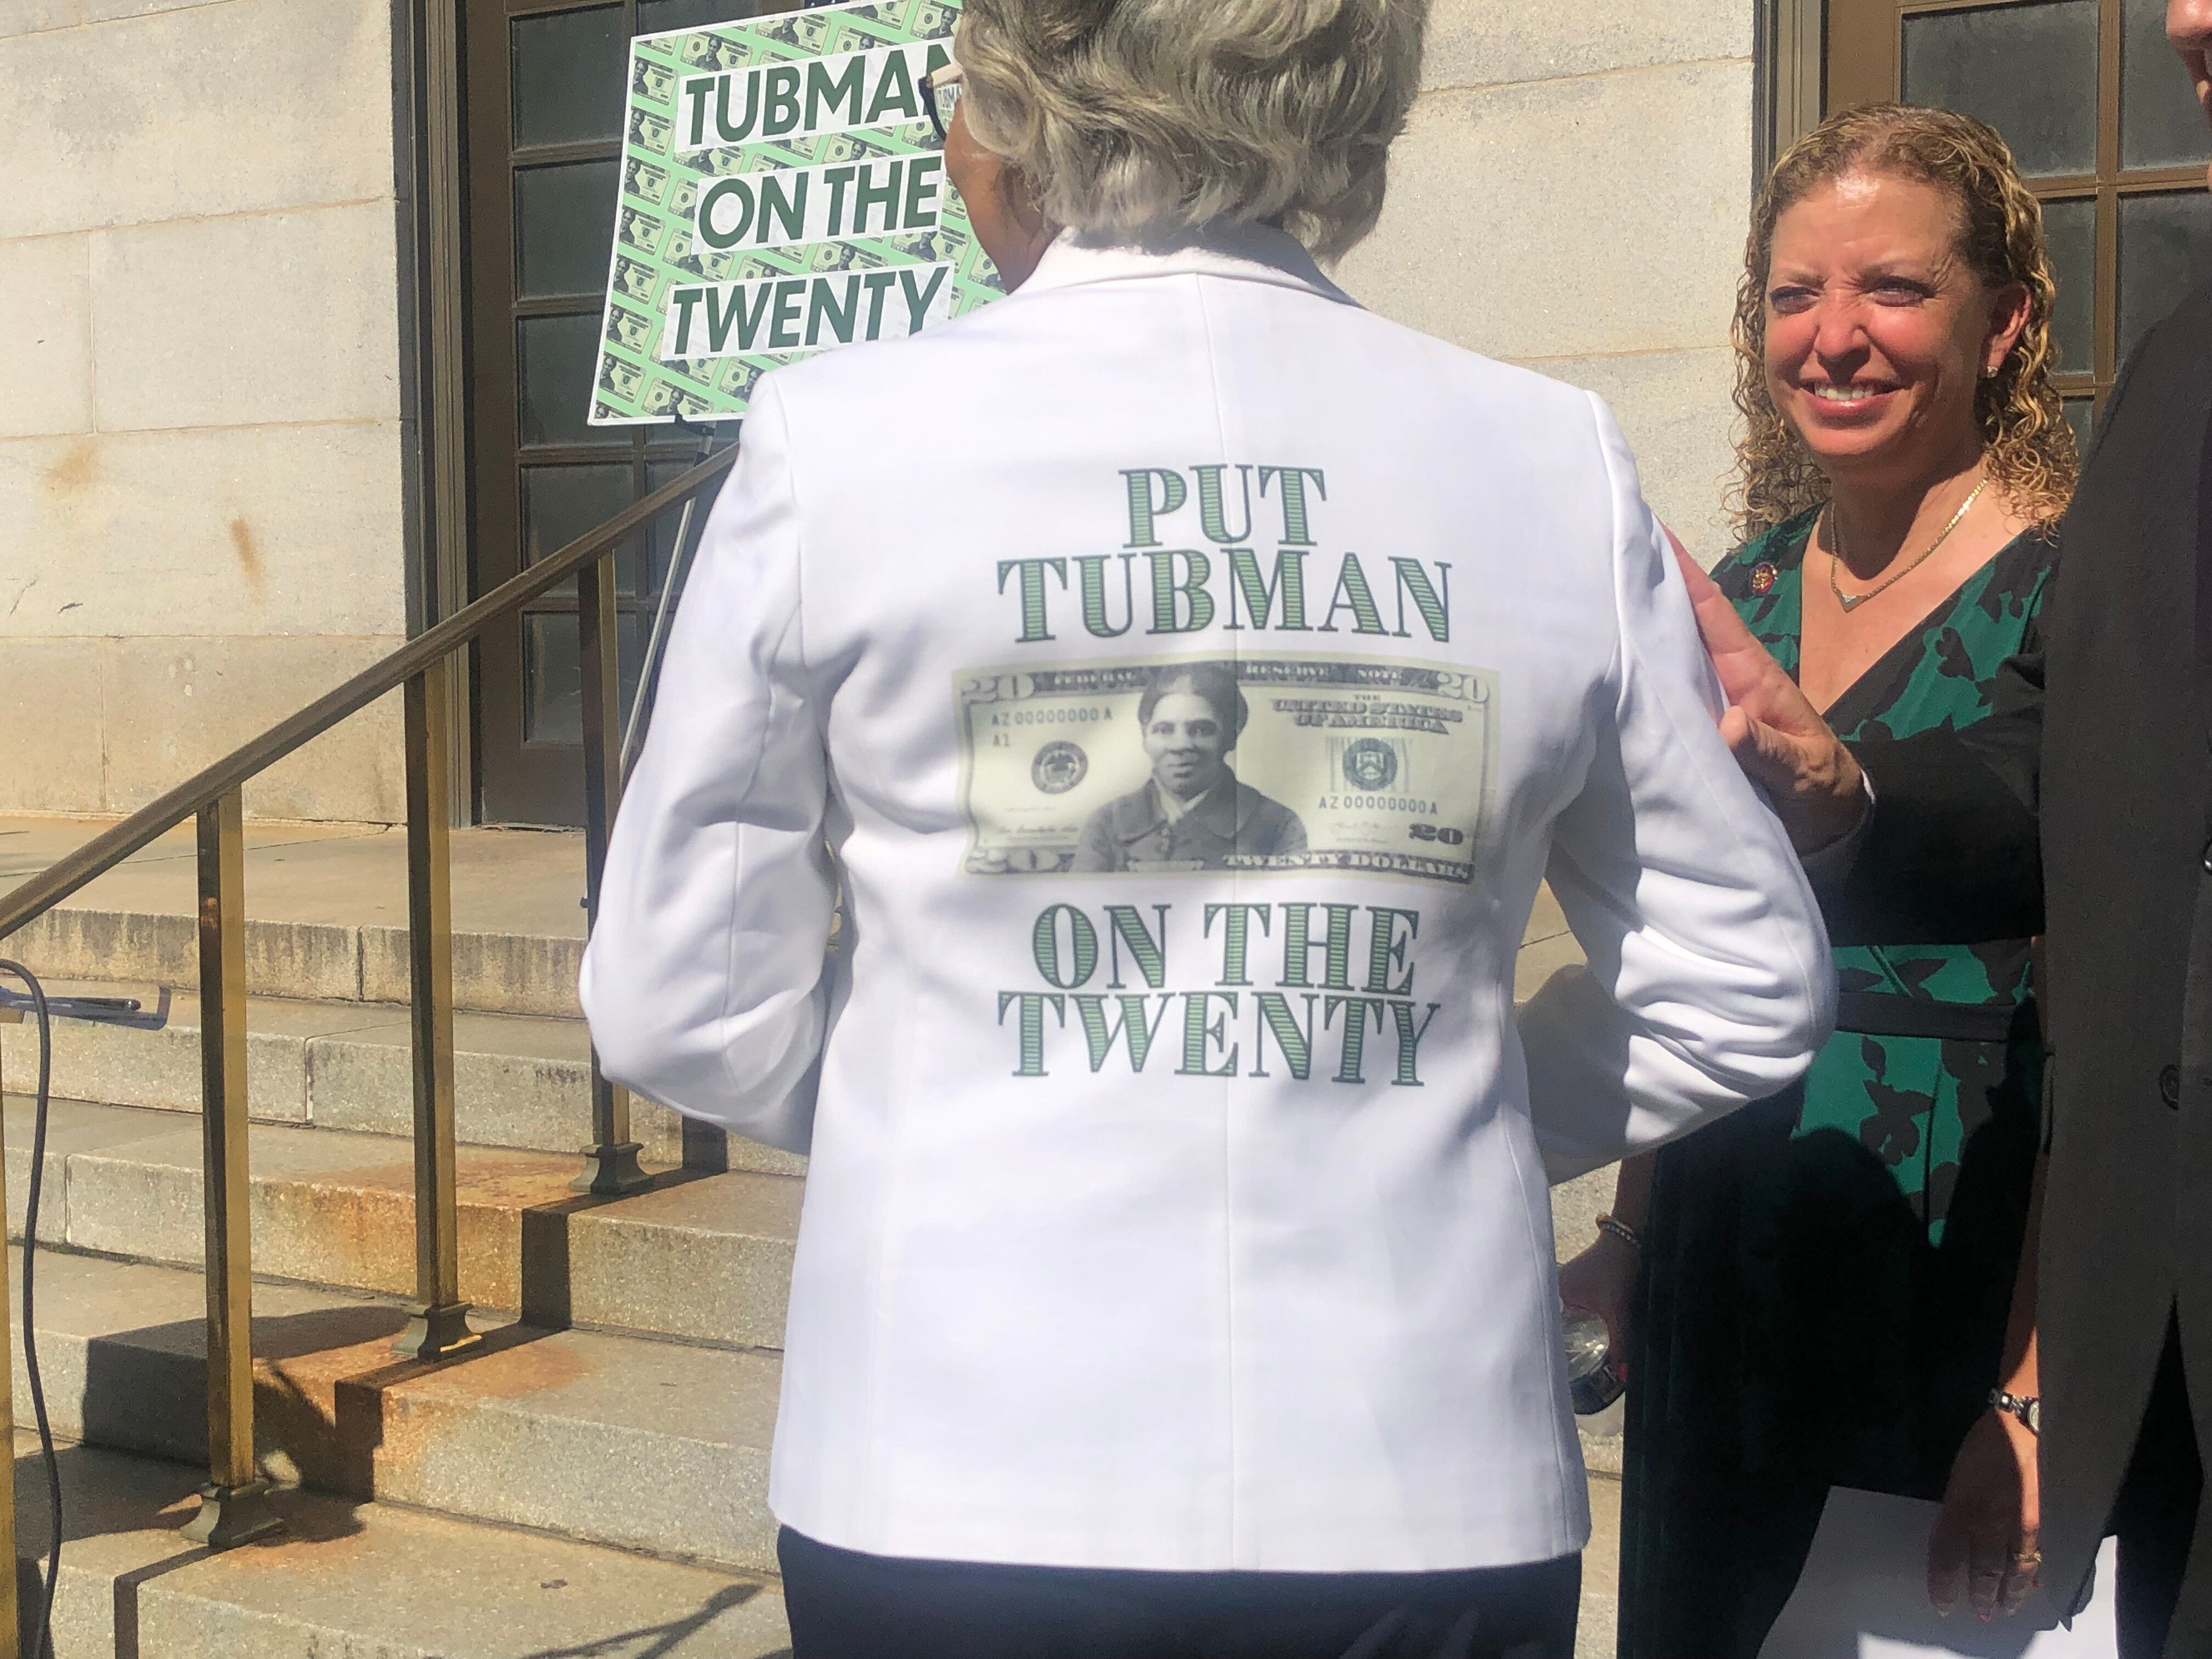 """Rep. Joyce Beatty (D-Ohio) turns around to display the back of her suit jacket that says: """"Put Tubman On The Twenty"""" with a m"""